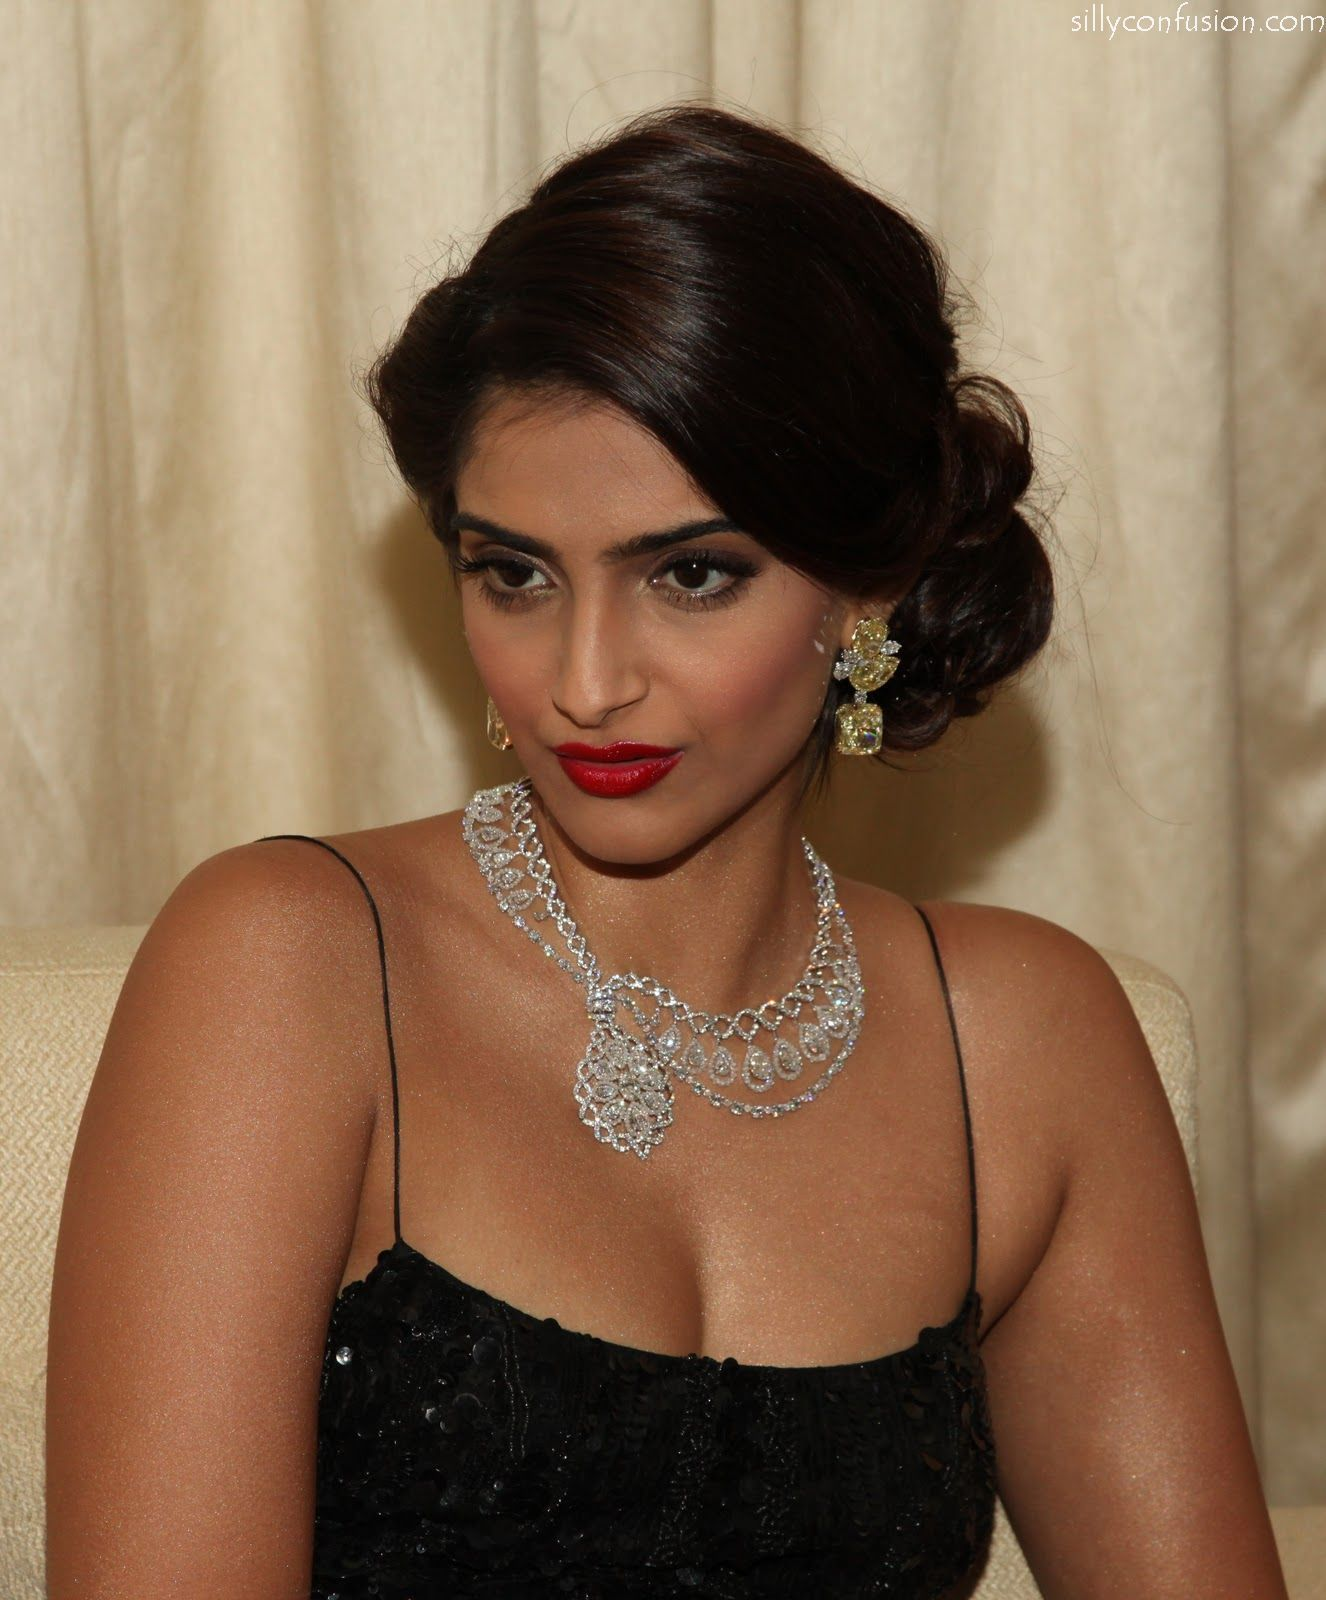 Wedding Hairstyles Games: Born In Film Personality's Family, Sonam Kapoor Is One Of